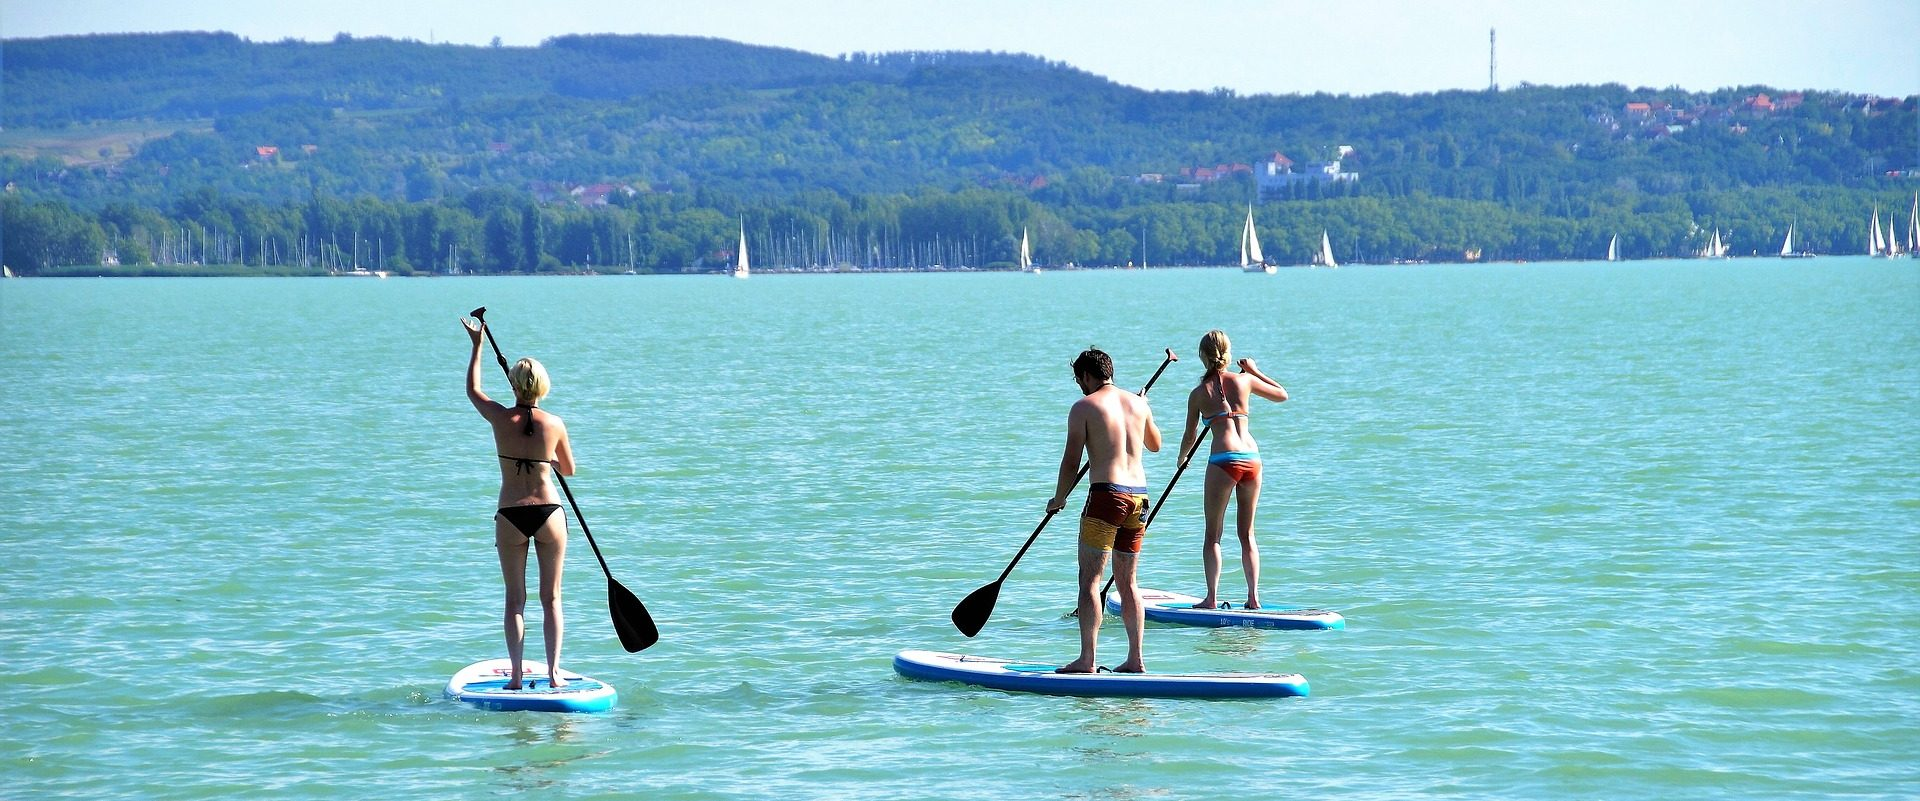 SUP stand-up-paddle 481_1920